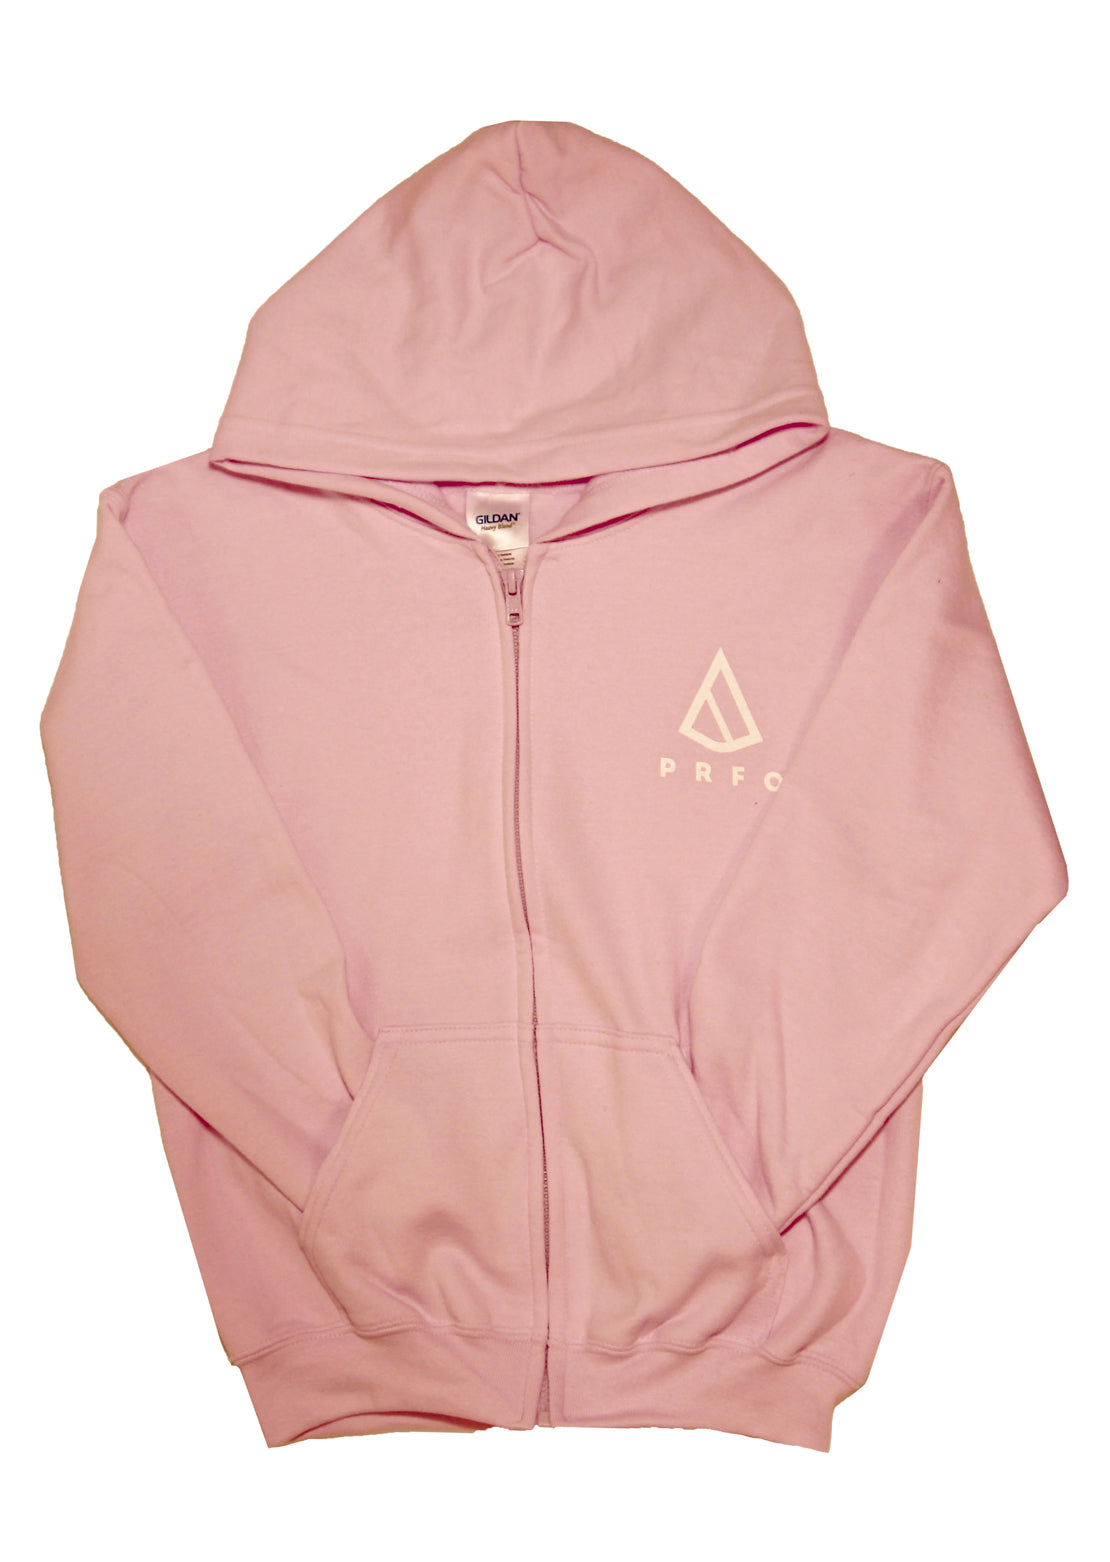 PRFO Junior Icon Front & Back Zip Hoodie Pale Pink/White